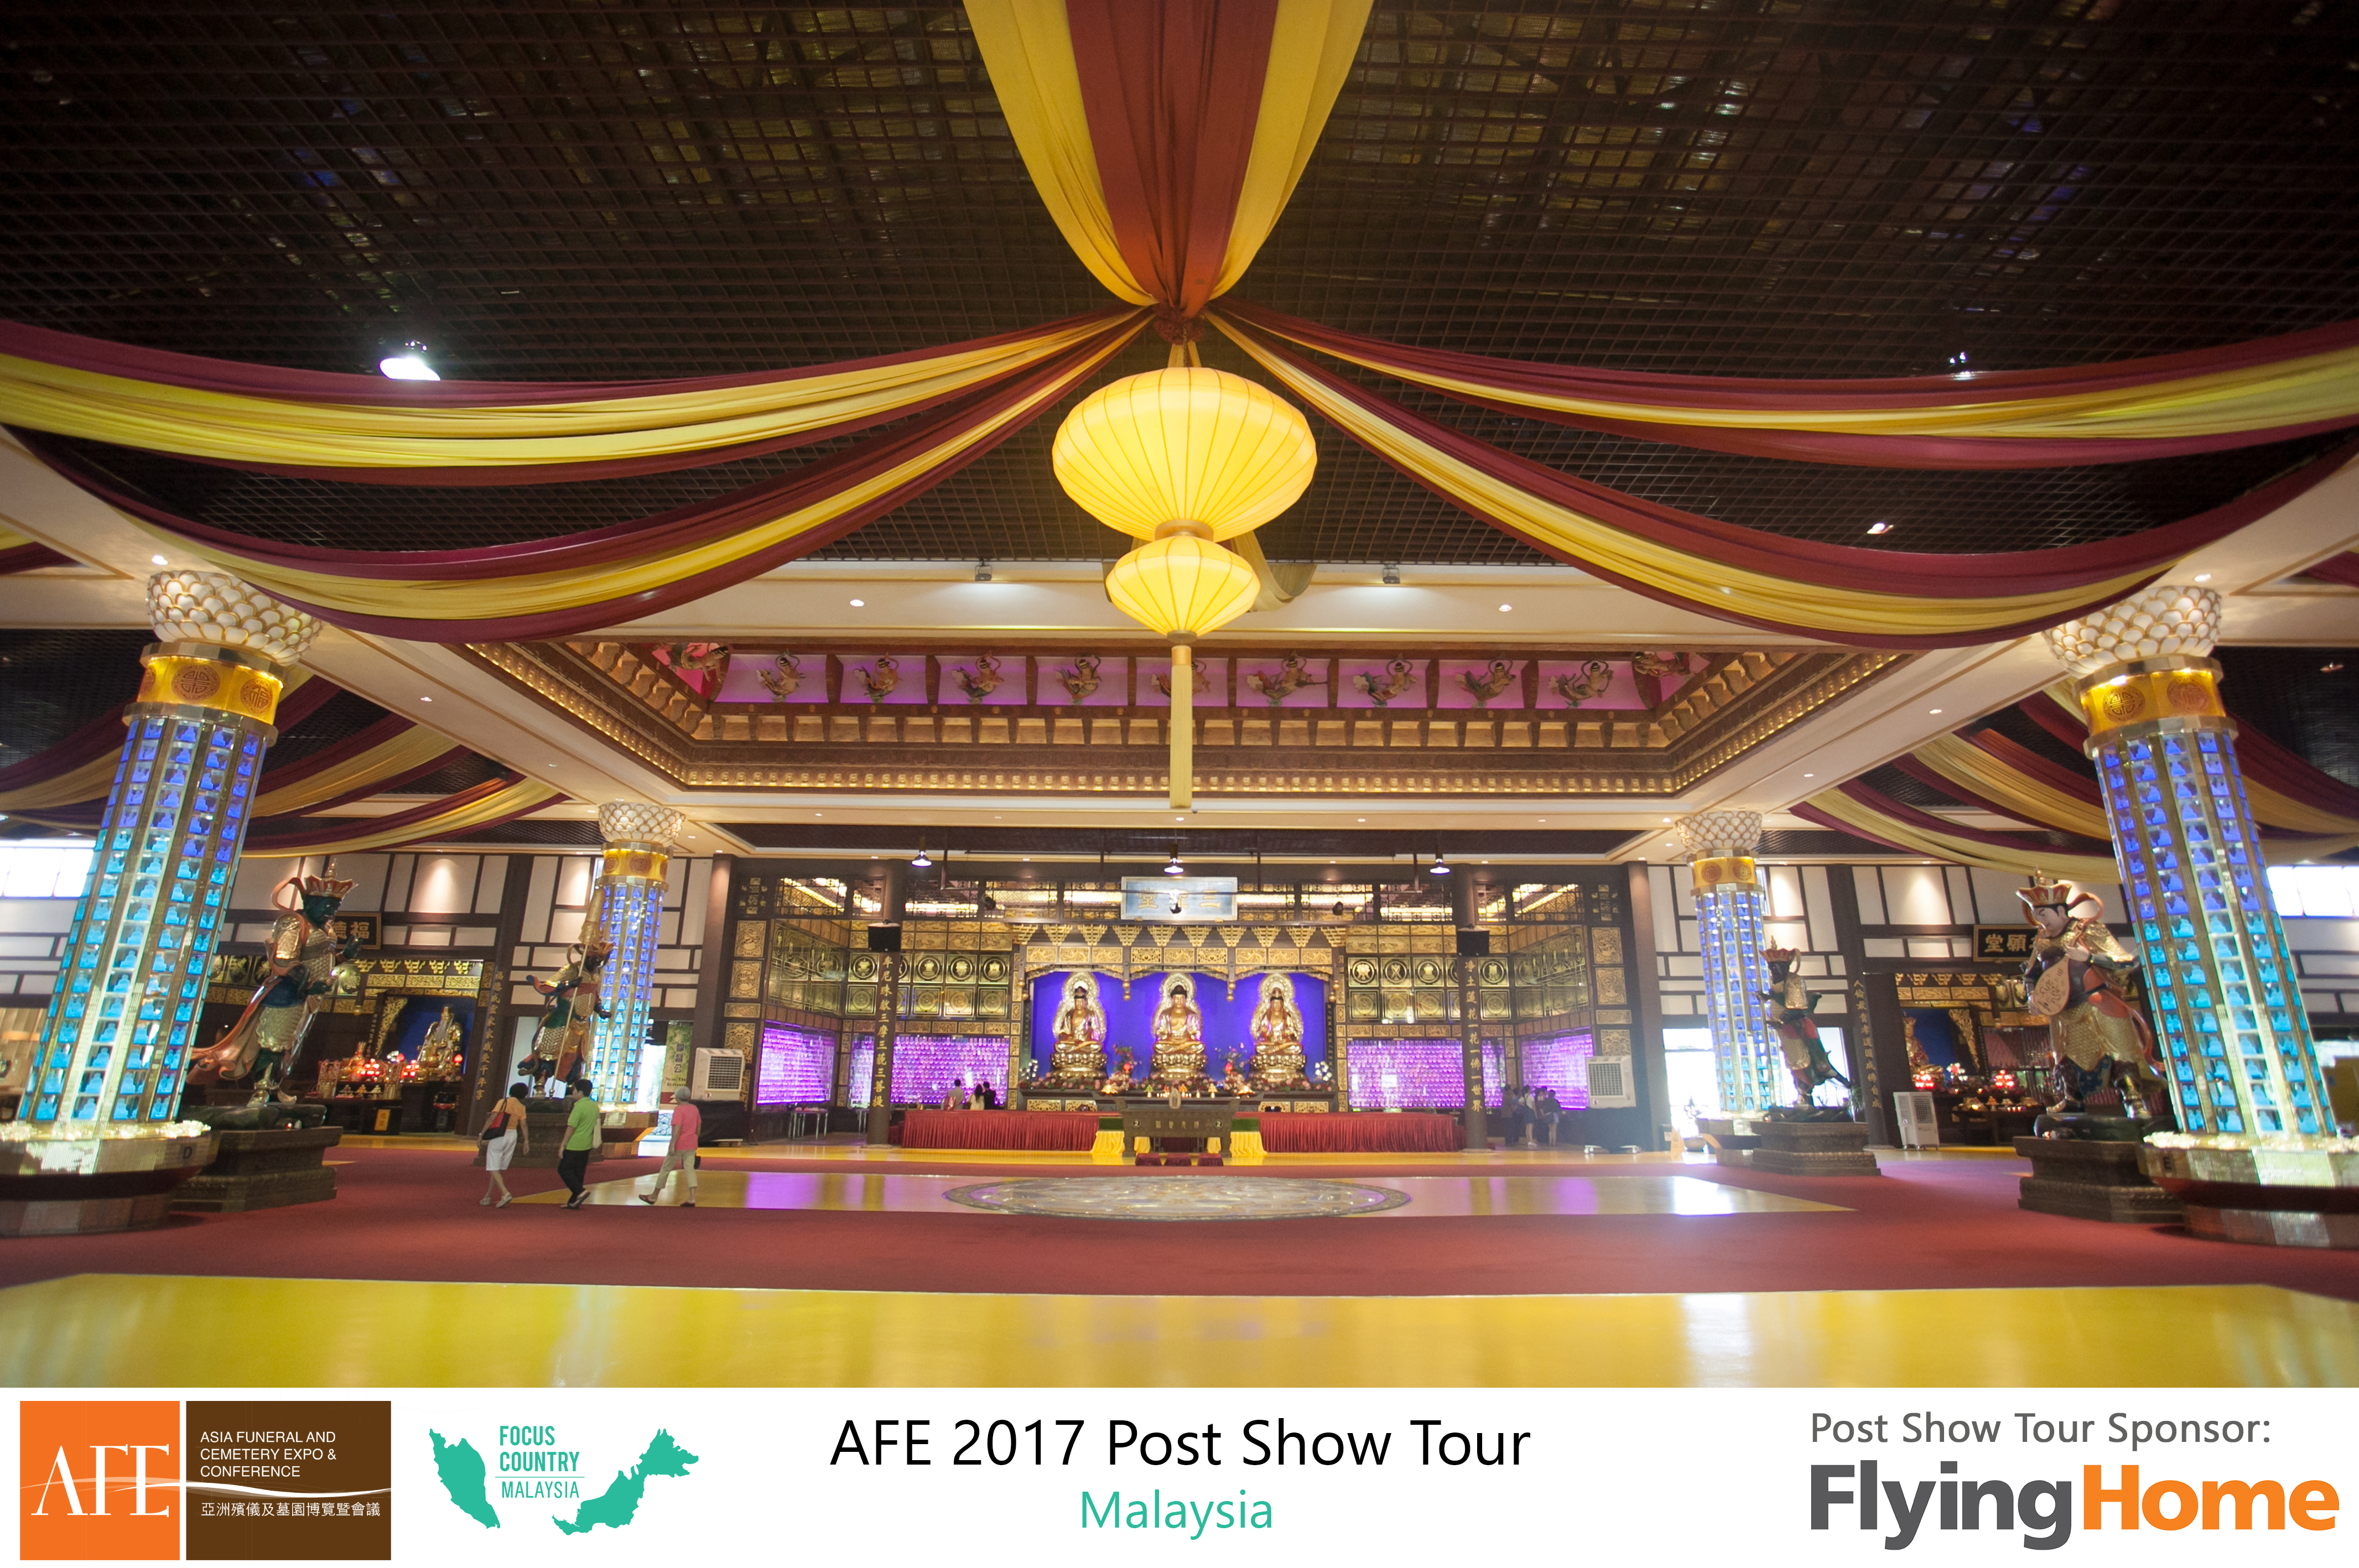 AFE Post Show Tour 2017 Day 2 - 04